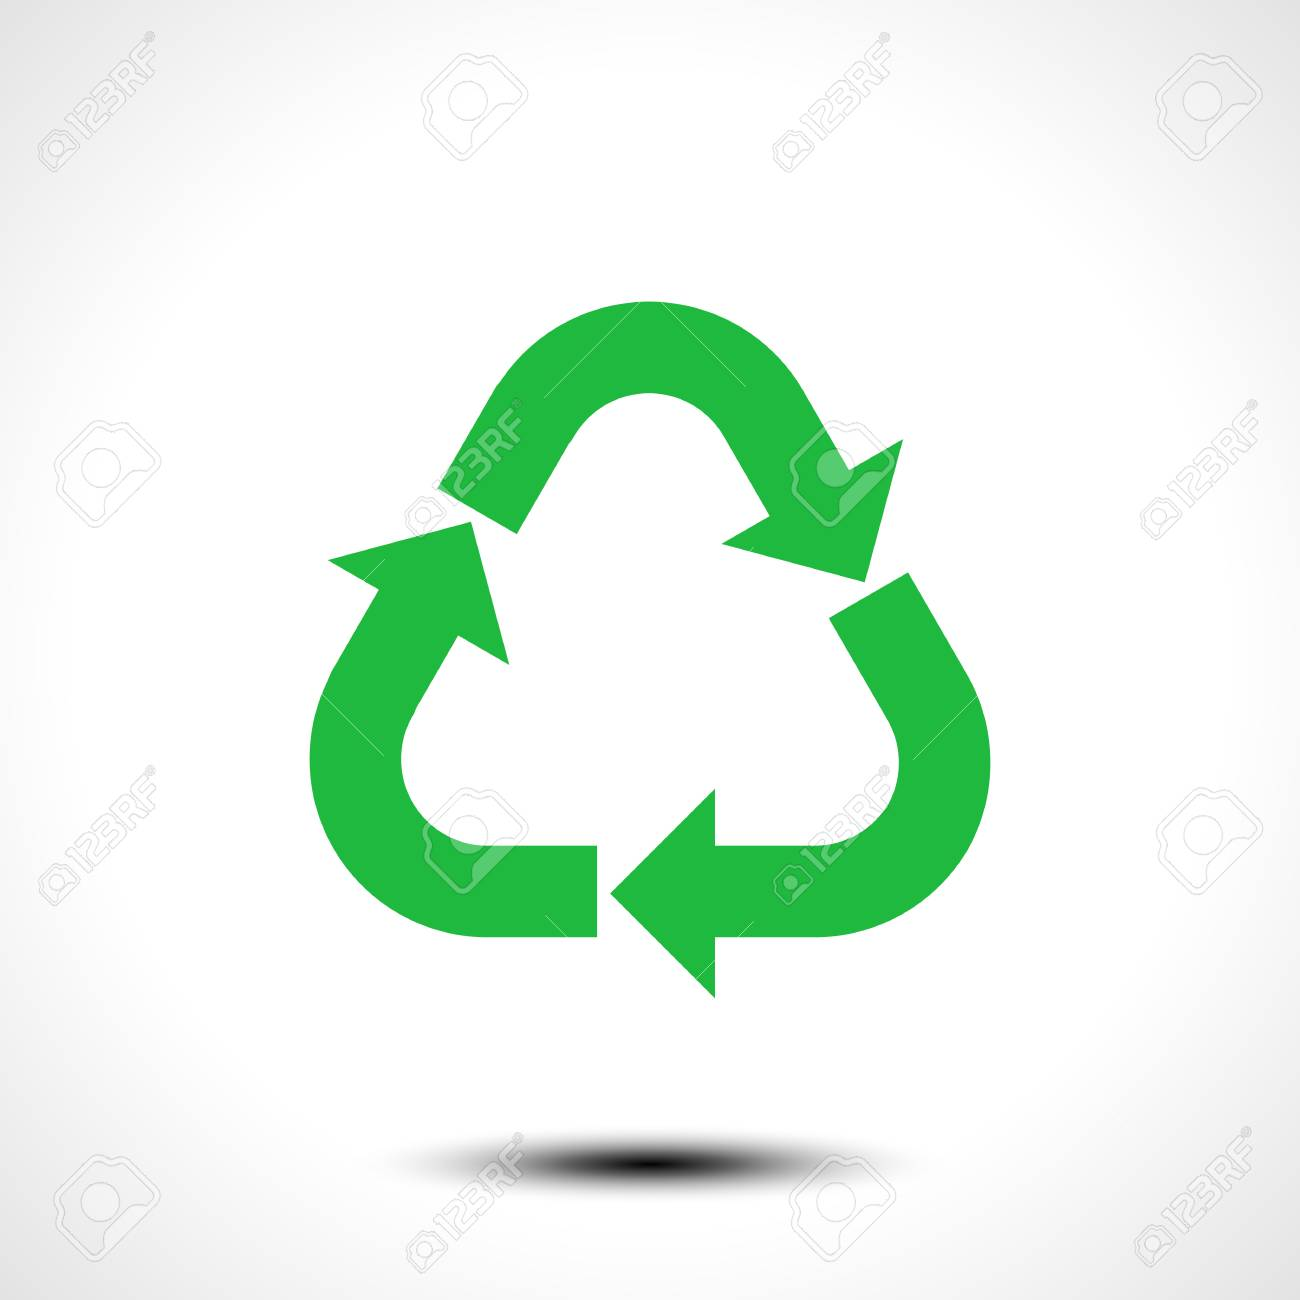 recycle icon eco recycle sign symbol isolated on white background rh 123rf com recycling icon vector free recycling icon vector